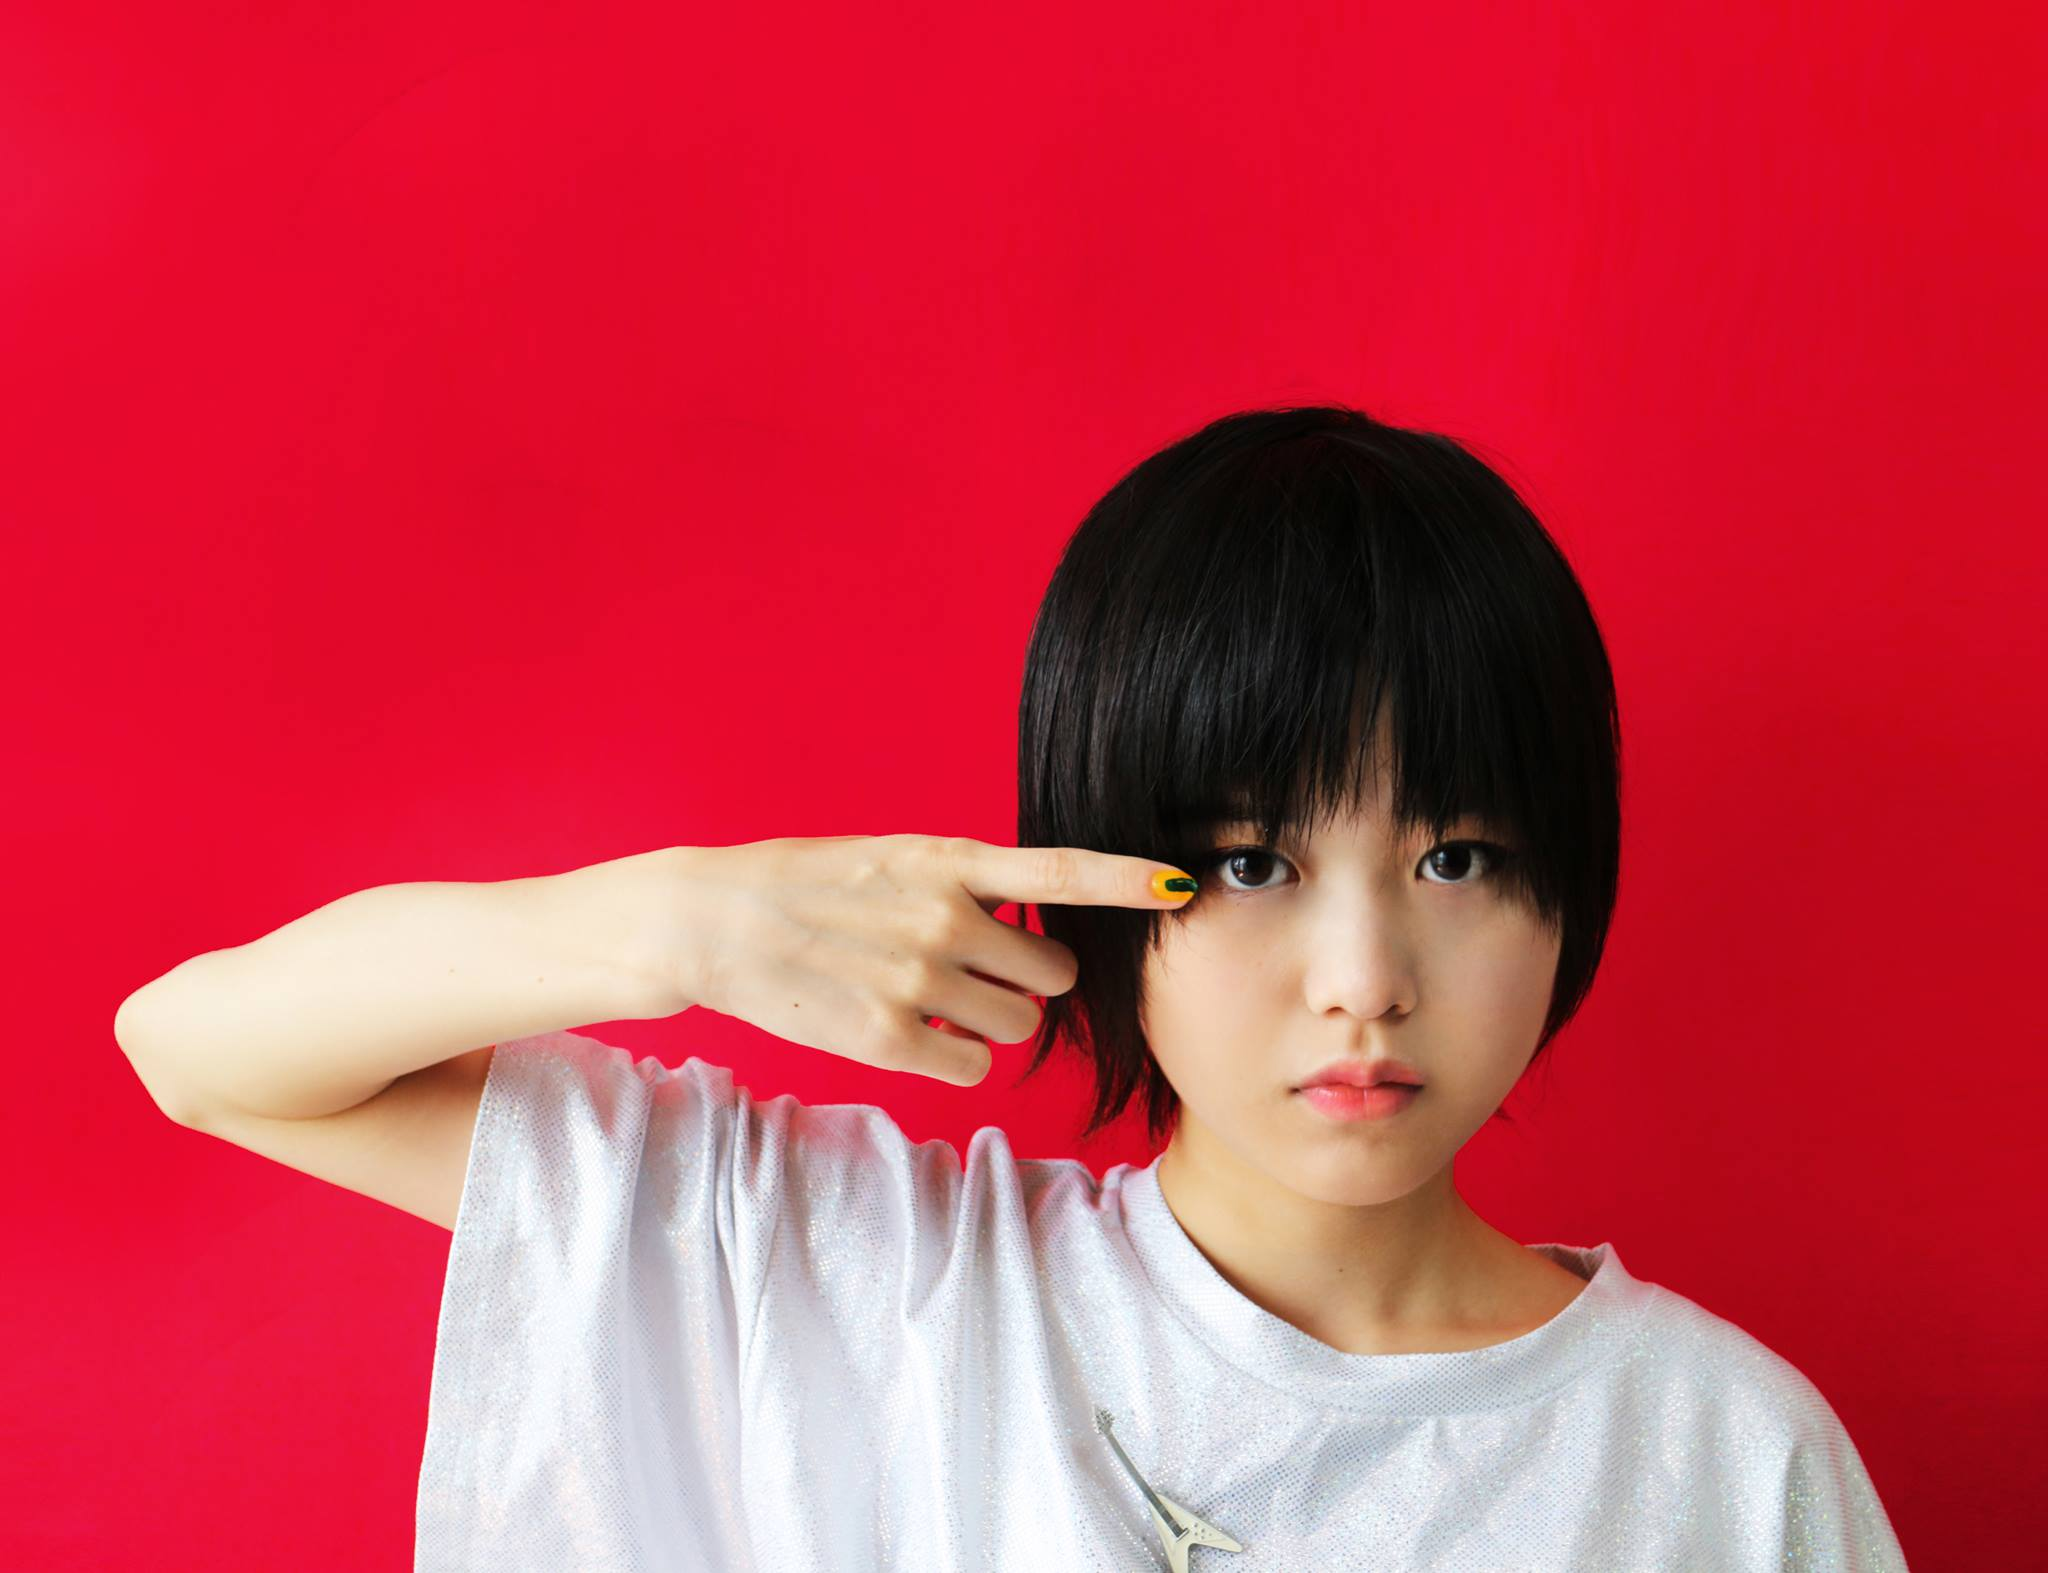 Japanese artist Rei to make her SXSW debut